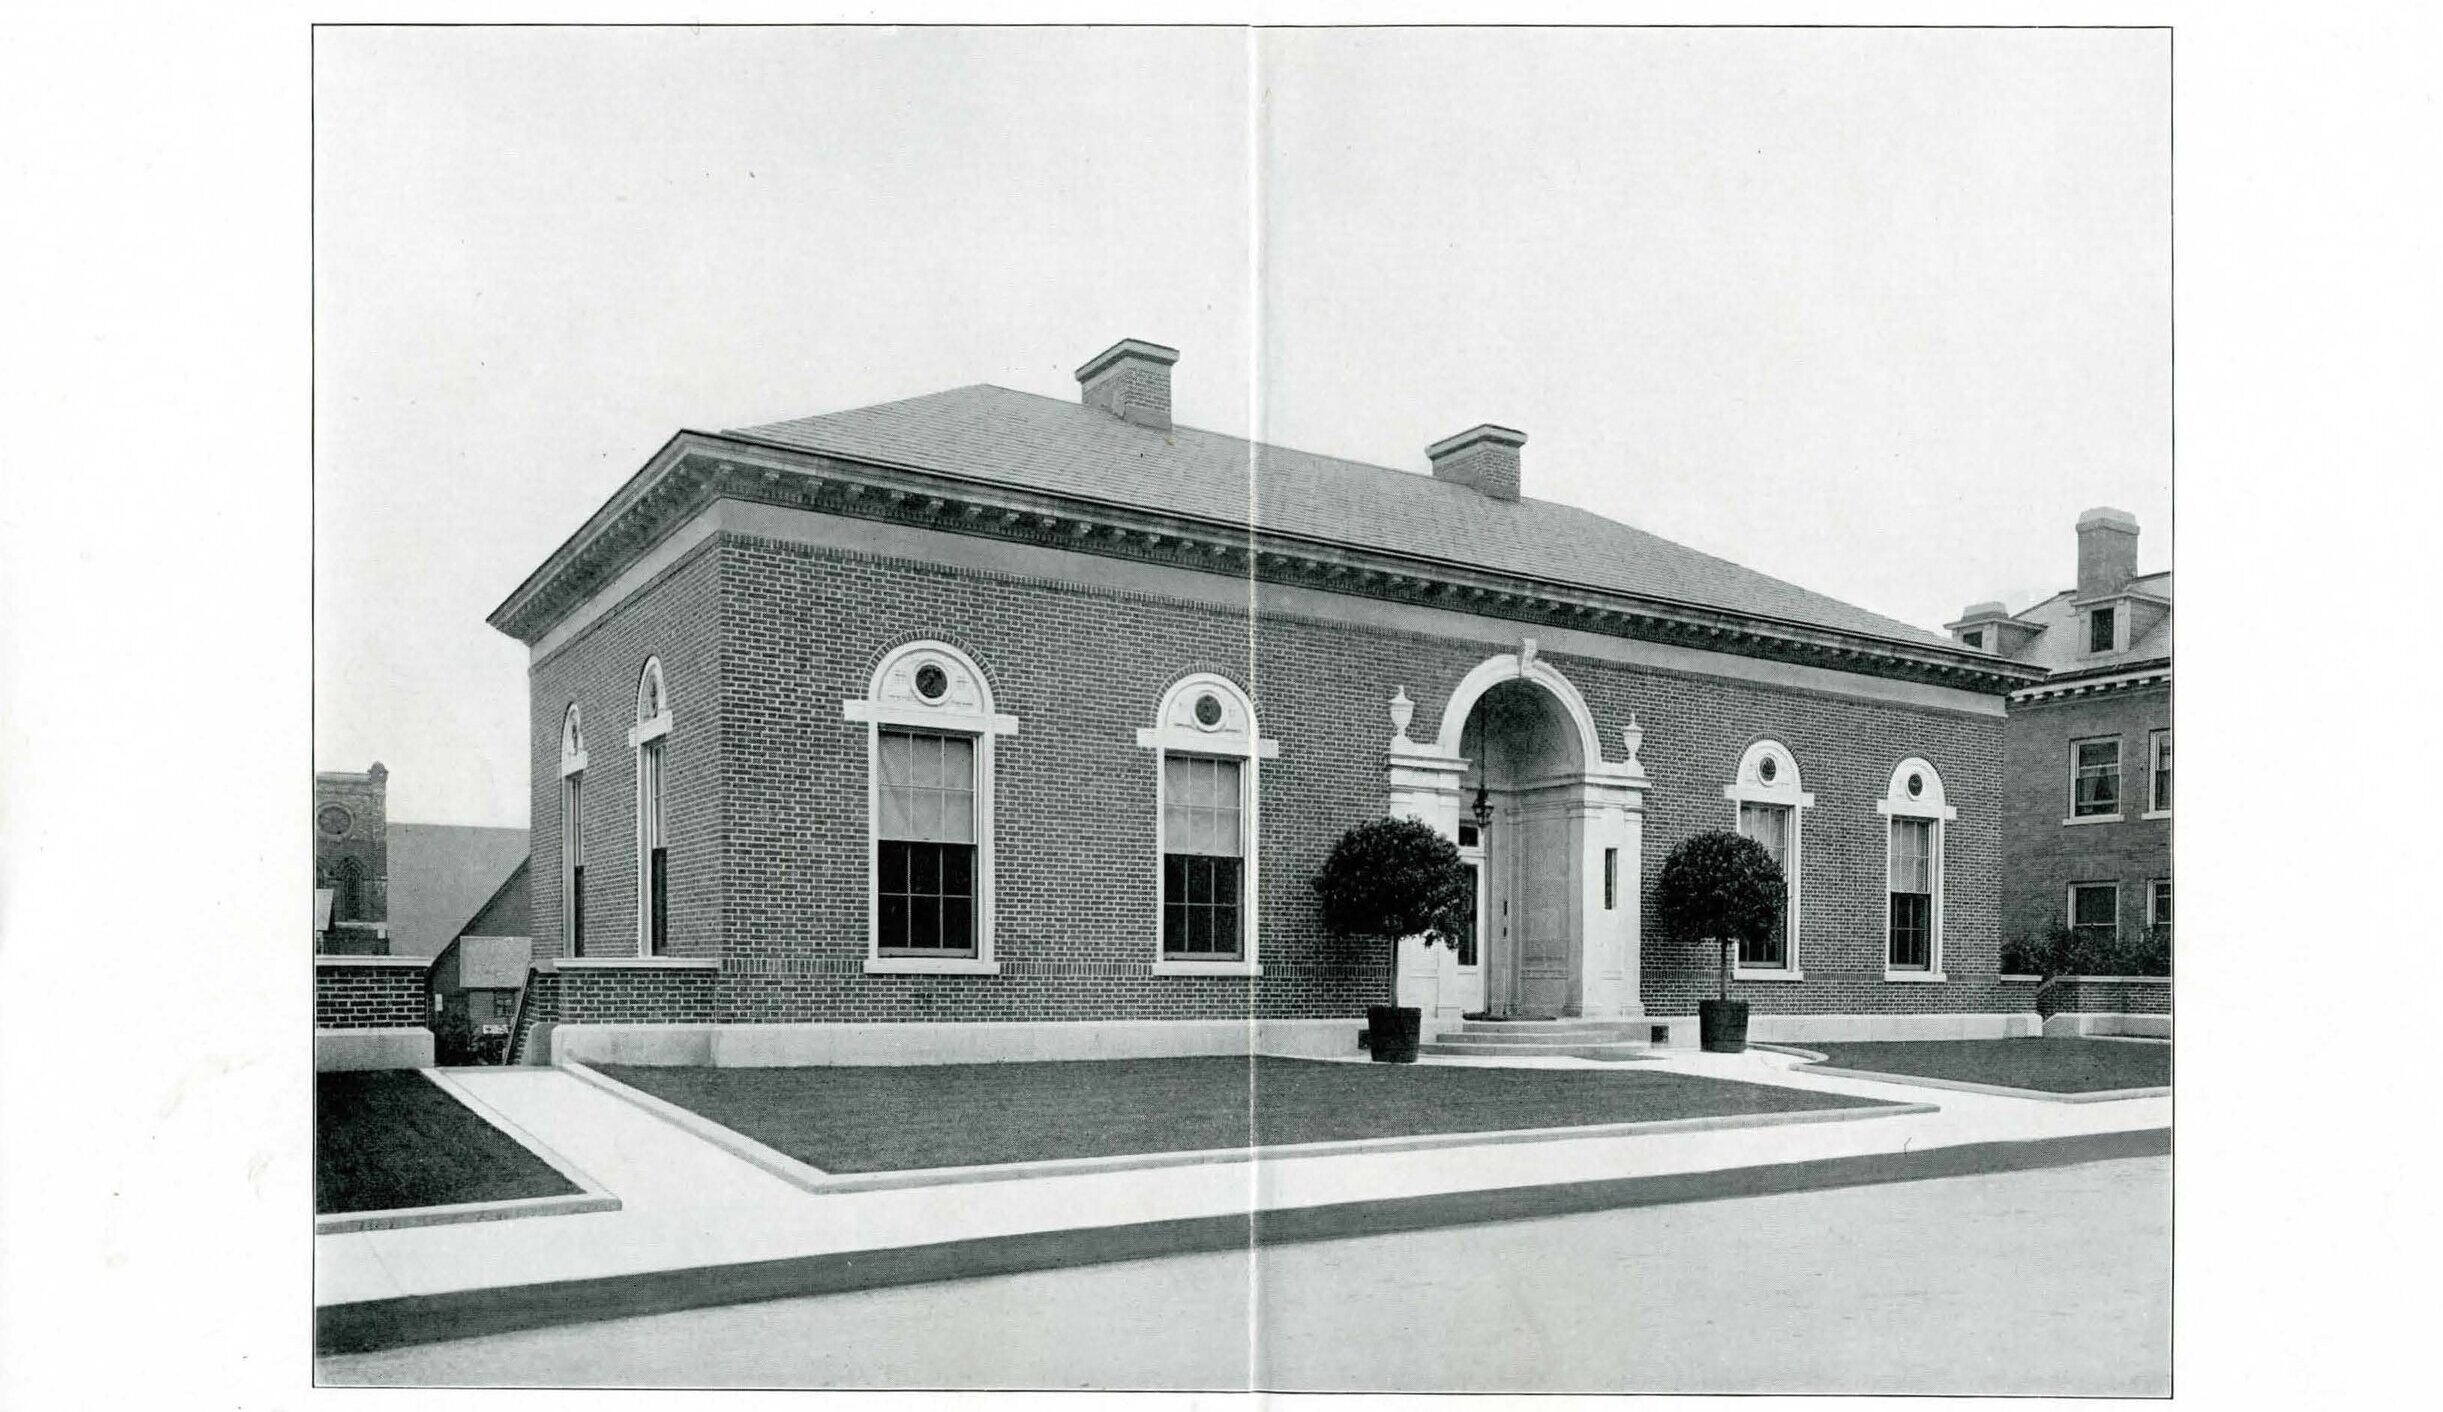 historical photo of library exterior